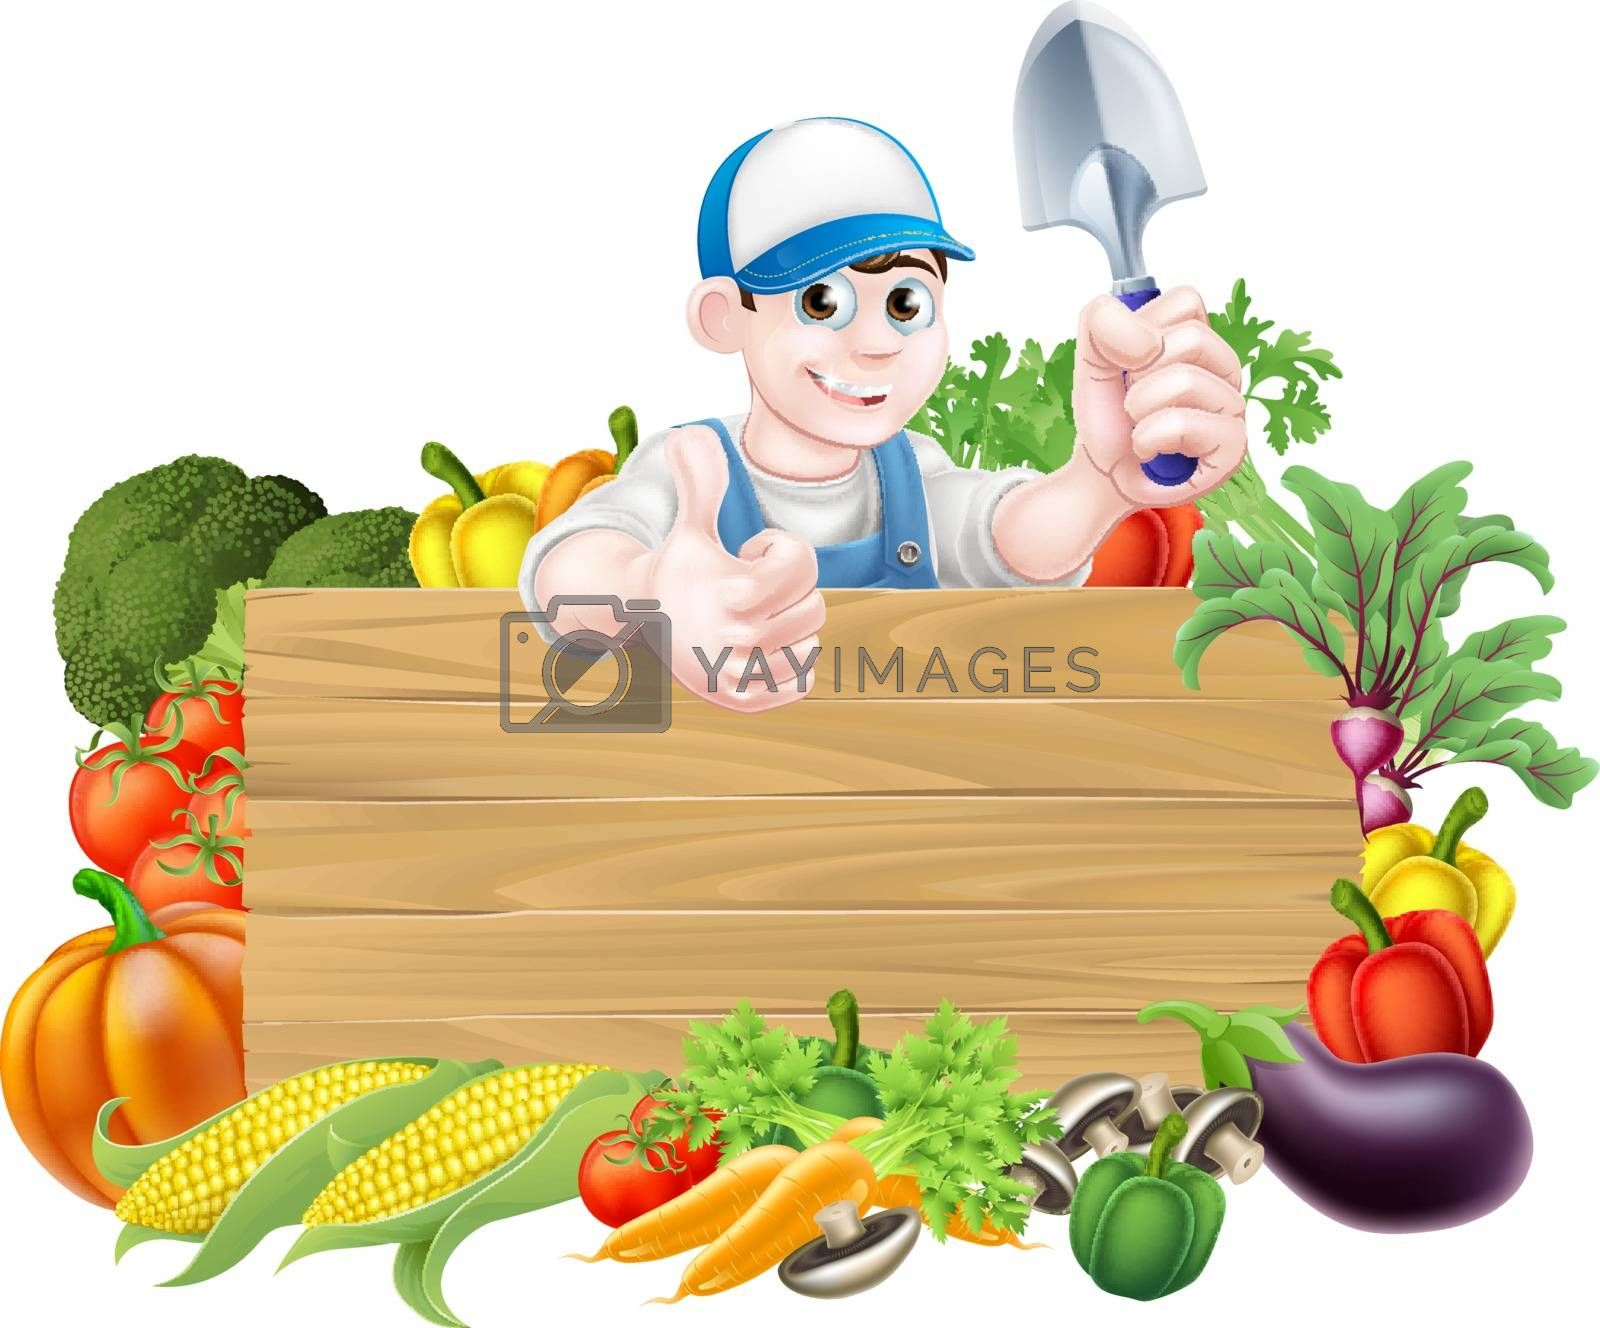 Gardener cartoon character holding a garden trowel hand spade tool and giving a thumbs up surrounded by vegetable produce